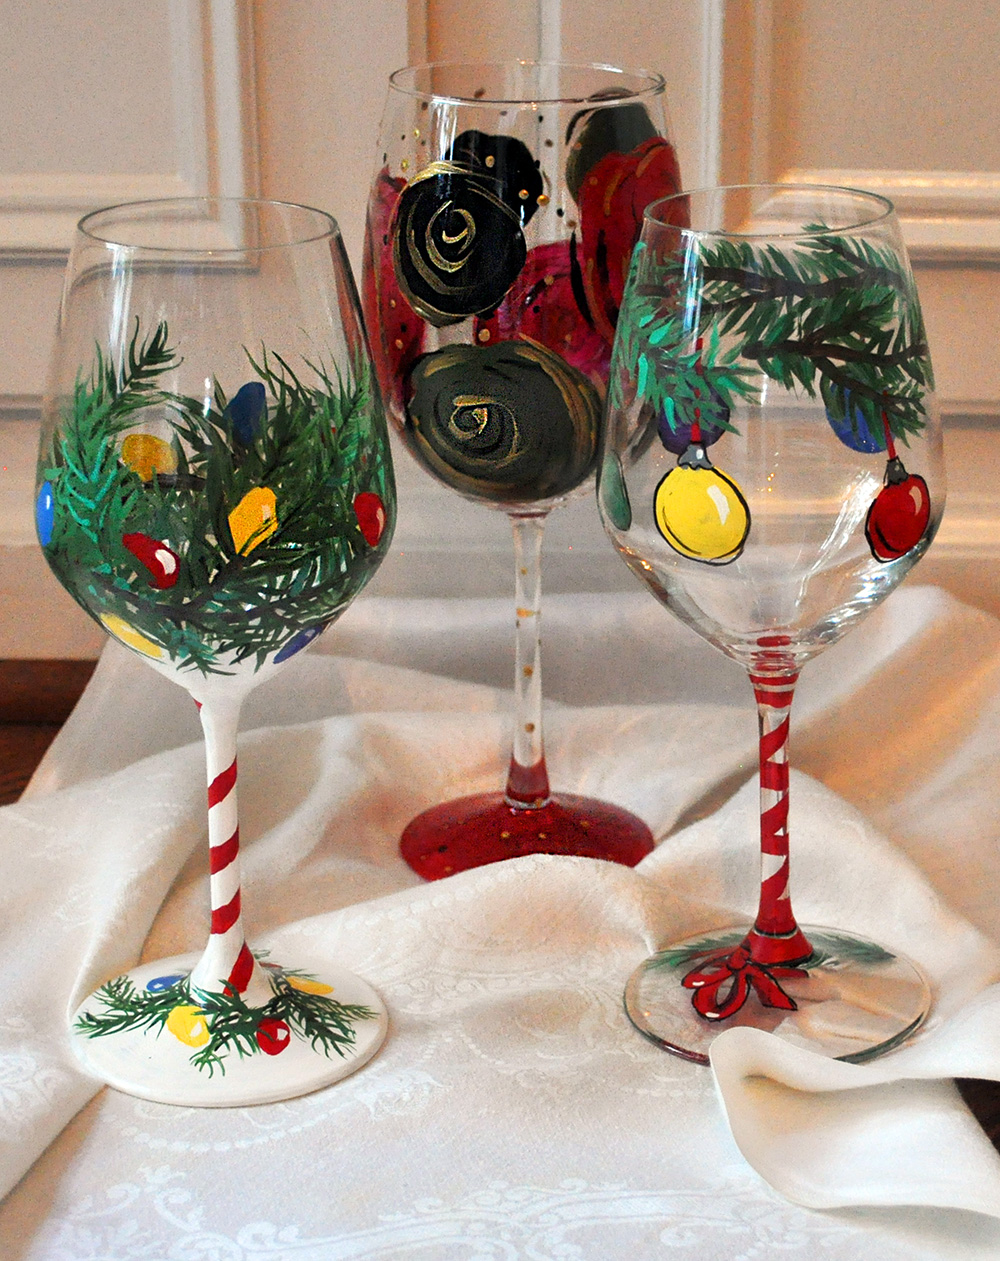 Painting Wine Glasses for a Holiday Celebration!